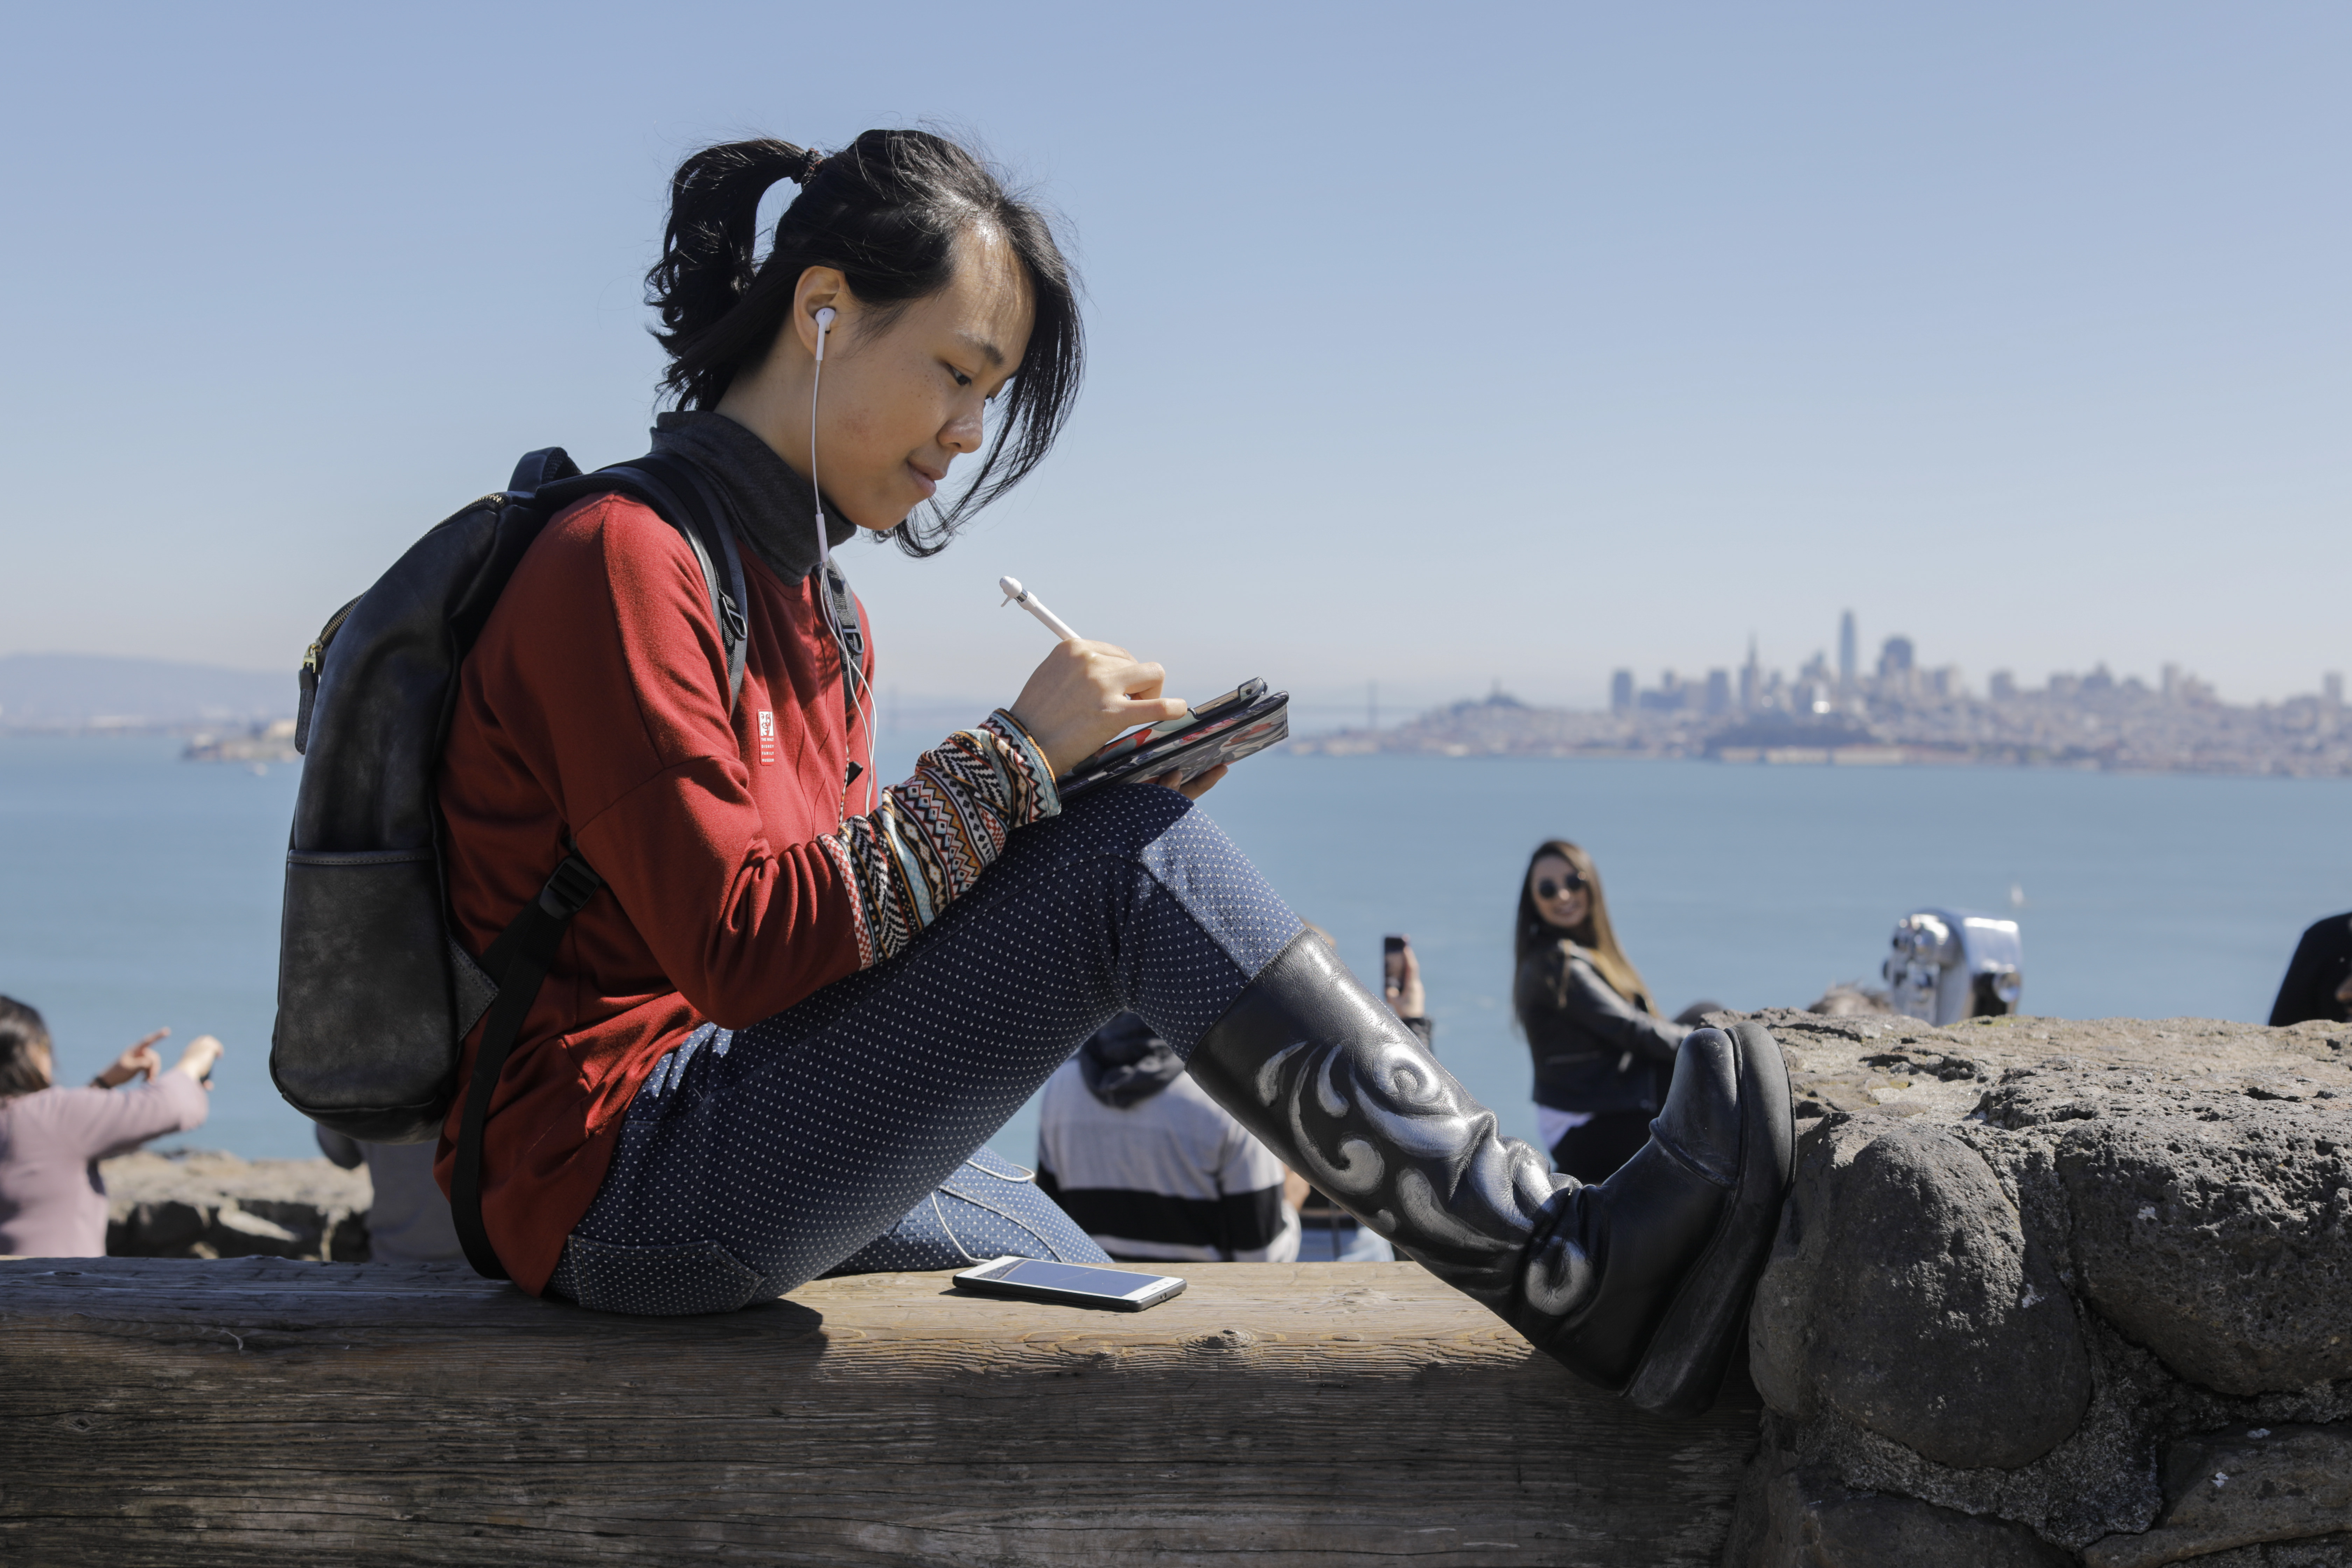 A woman sits in a scenic location and writes on her tablet while listening to music.